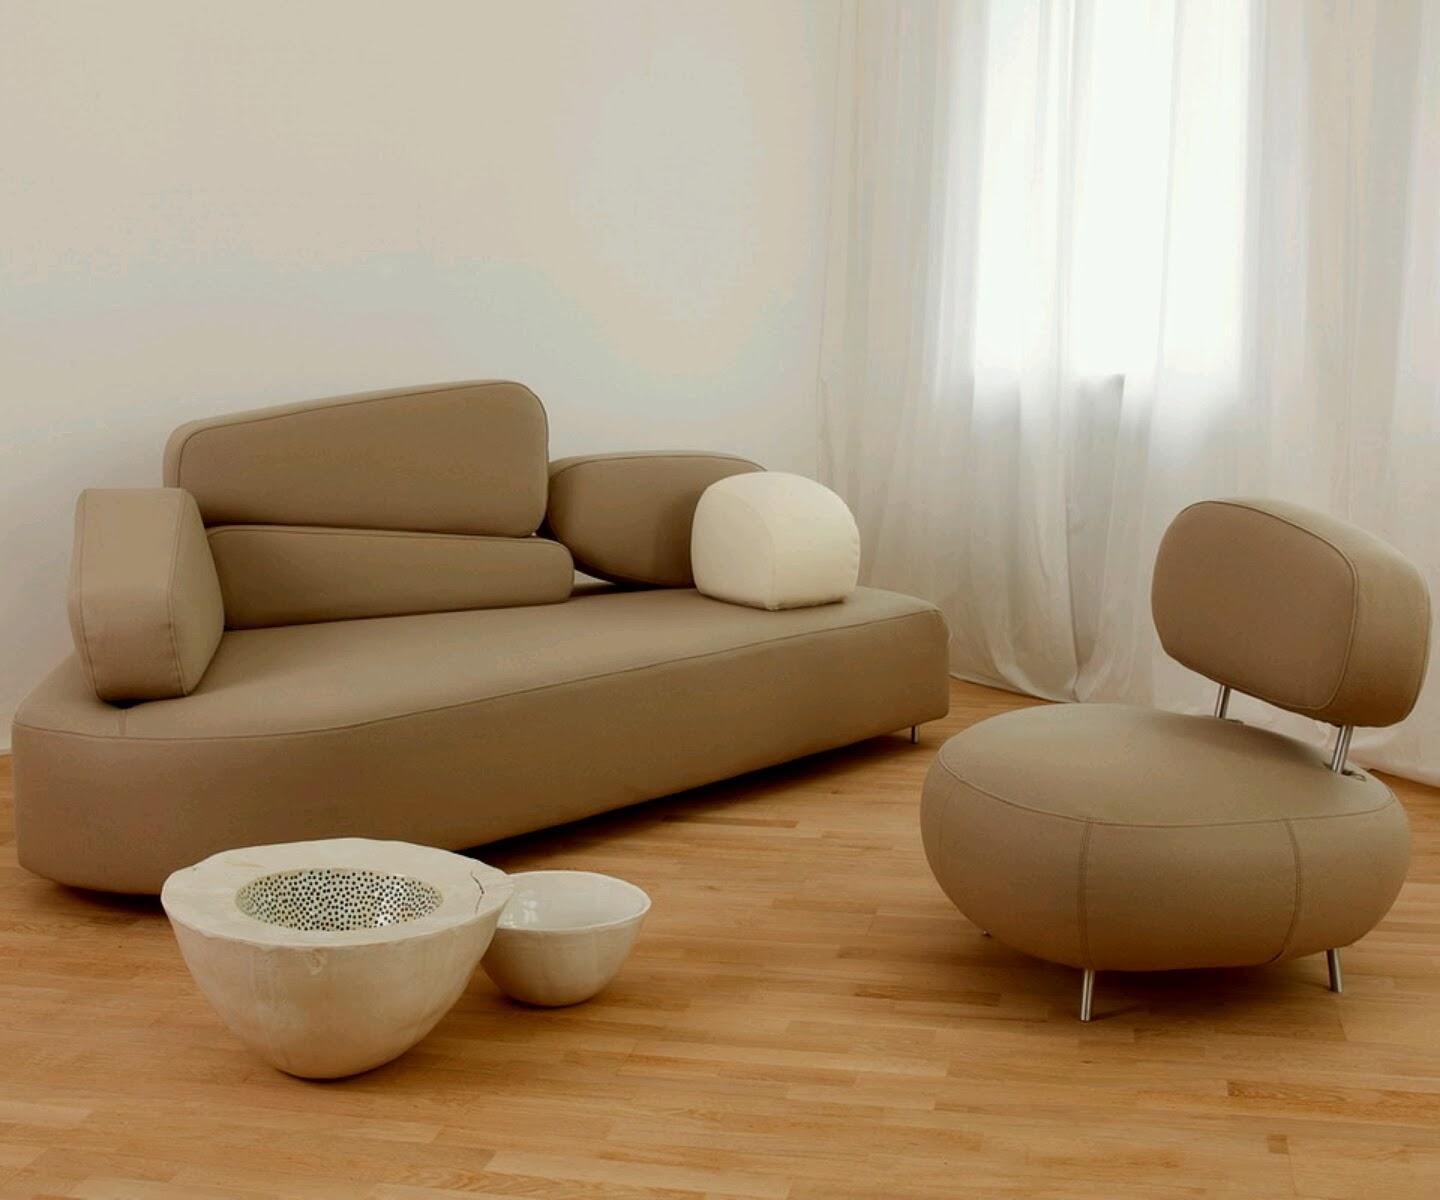 Canap togo canap moderne - Canape moderne ...